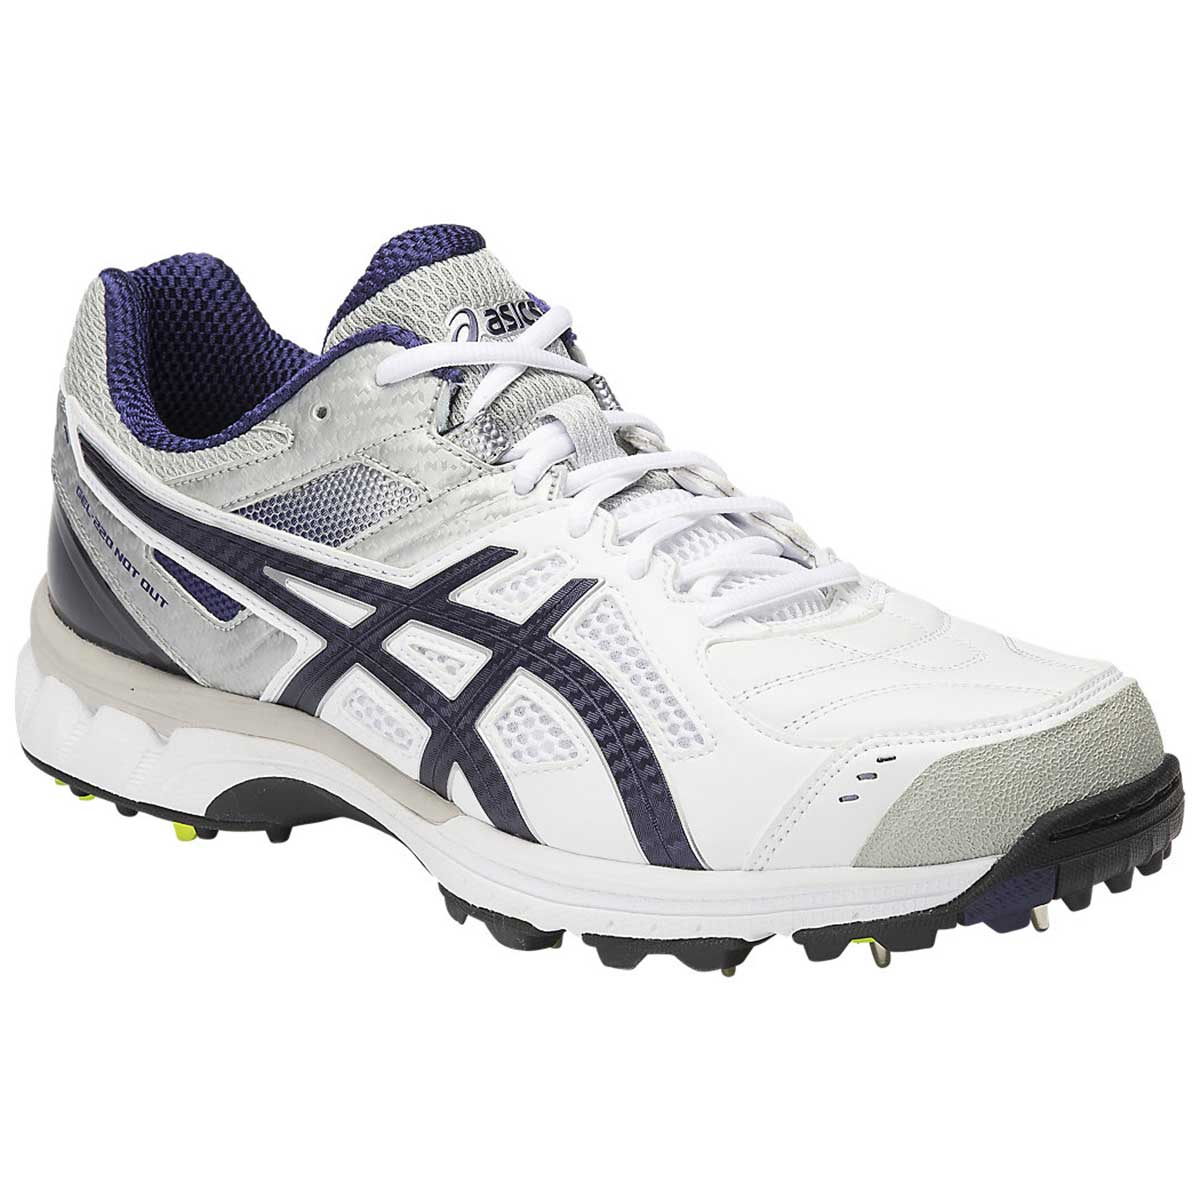 Cricket Shoes, Cricket, Sports, Buy, Asics, Asics Gel-220 Not Out Cricket  Shoes(White/Indigo Blue/Silver)